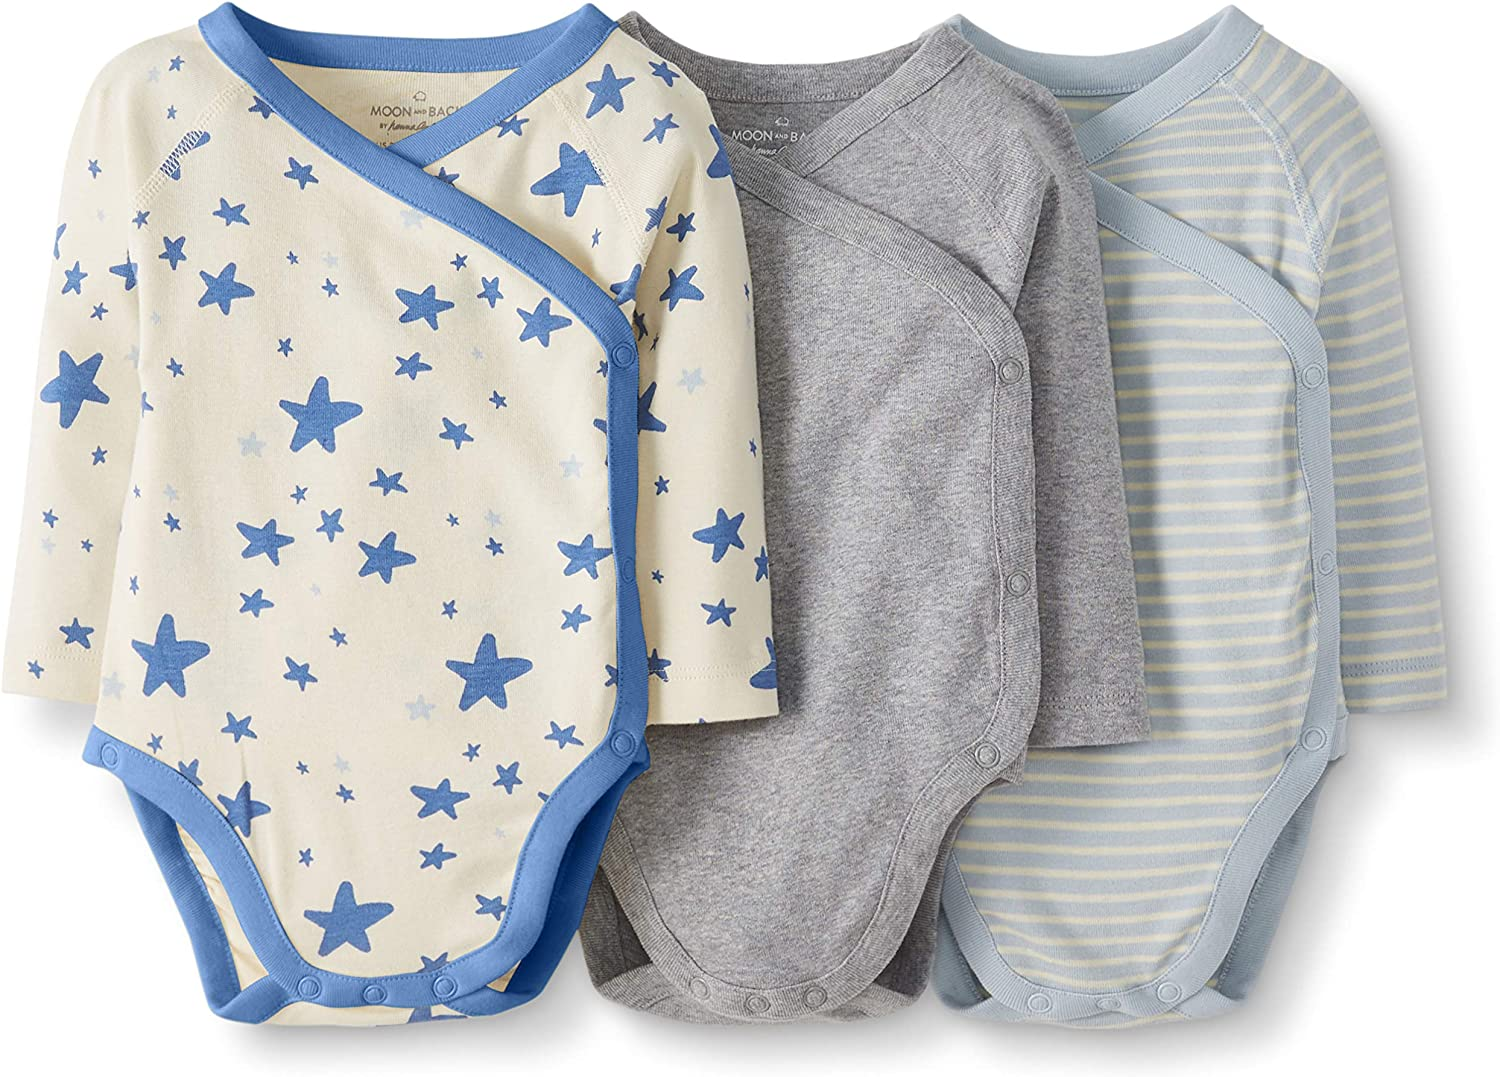 Moon and Back by Hanna Andersson Baby 3 Pack Jogger